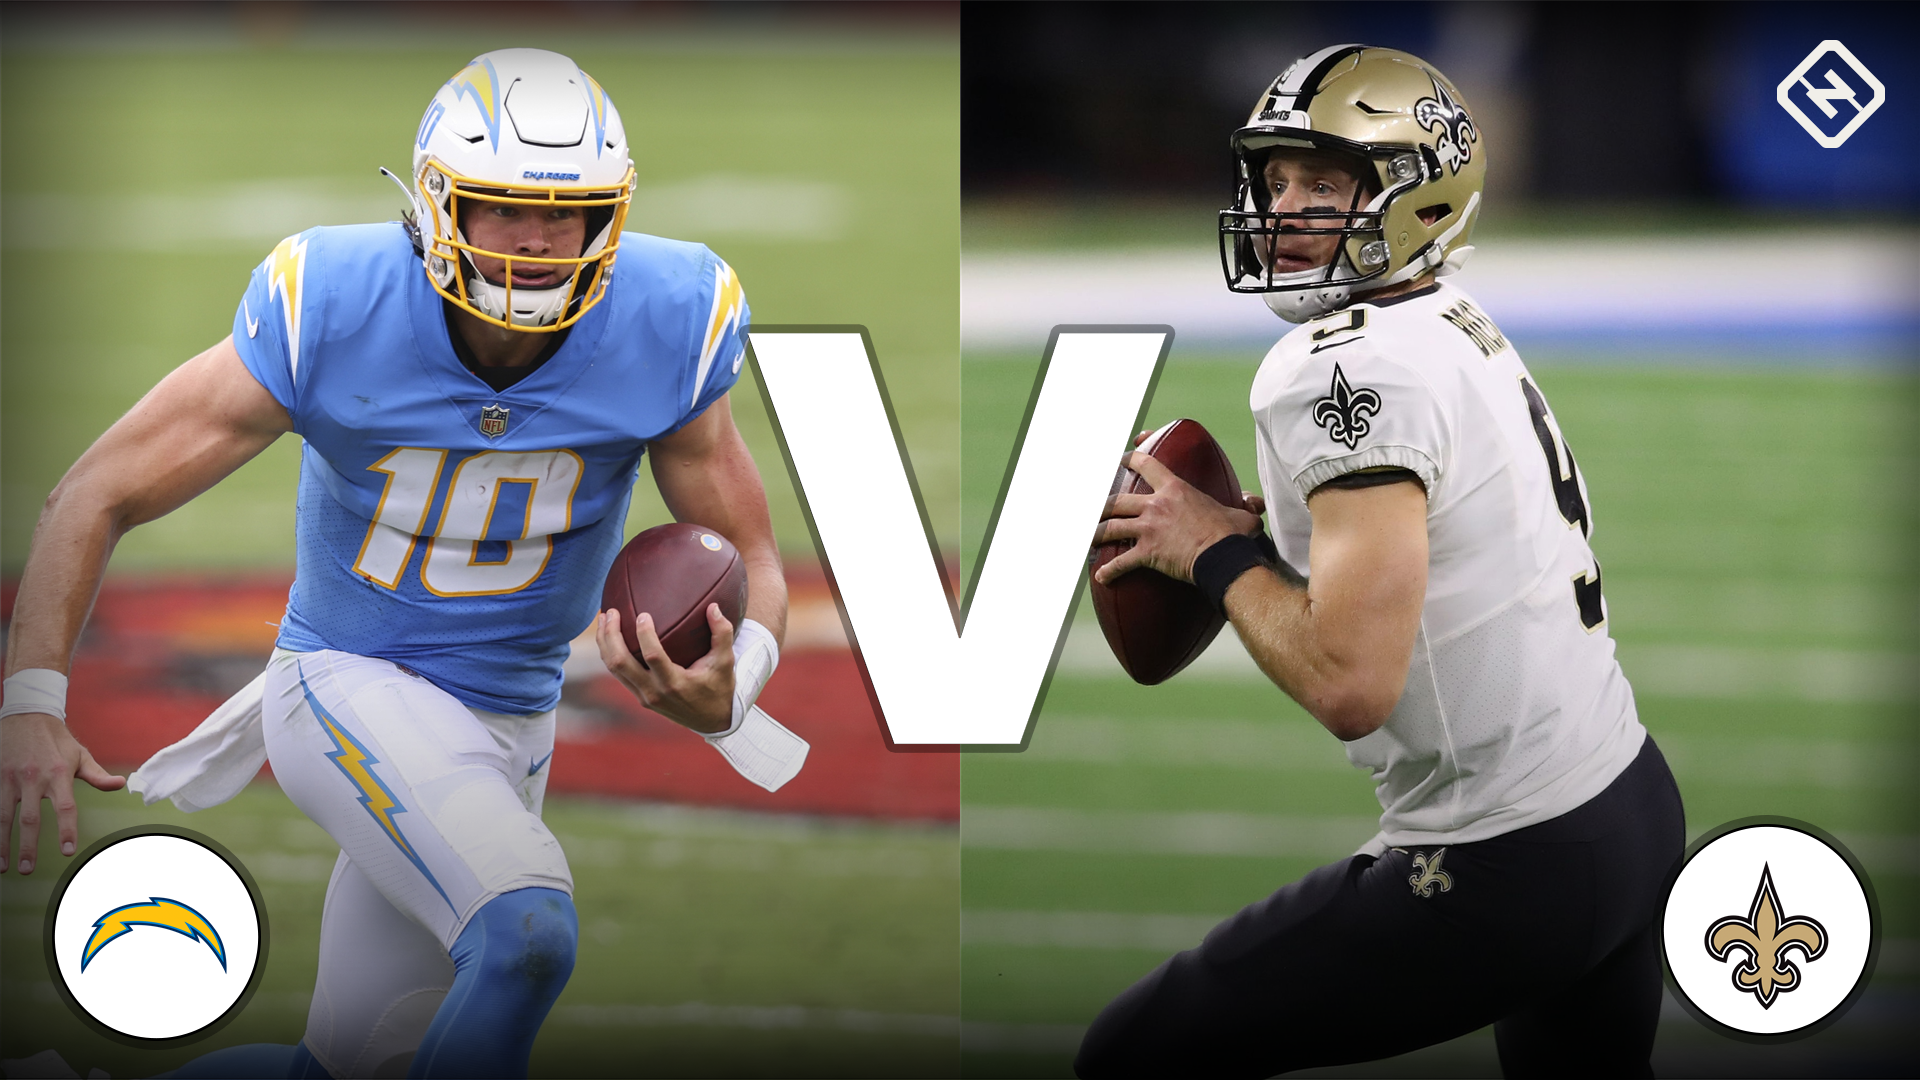 Saints vs. Chargers live score, updates, highlights from NFL's 'Monday Night Football' game 1